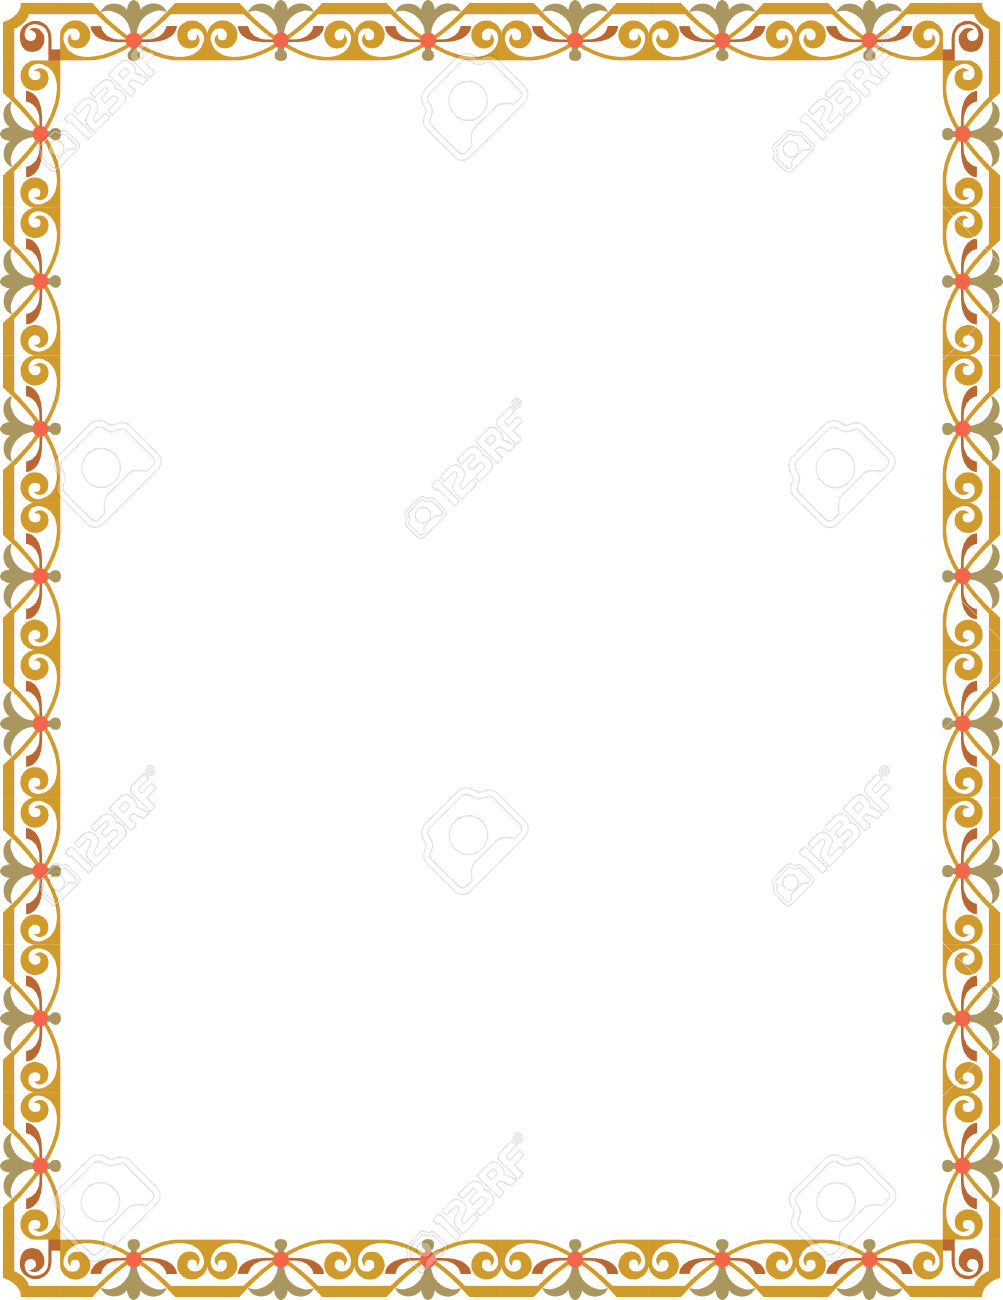 Thin frame clipart transparent download Simple Tiling Thin Frame, Colored Royalty Free Cliparts, Vectors ... transparent download